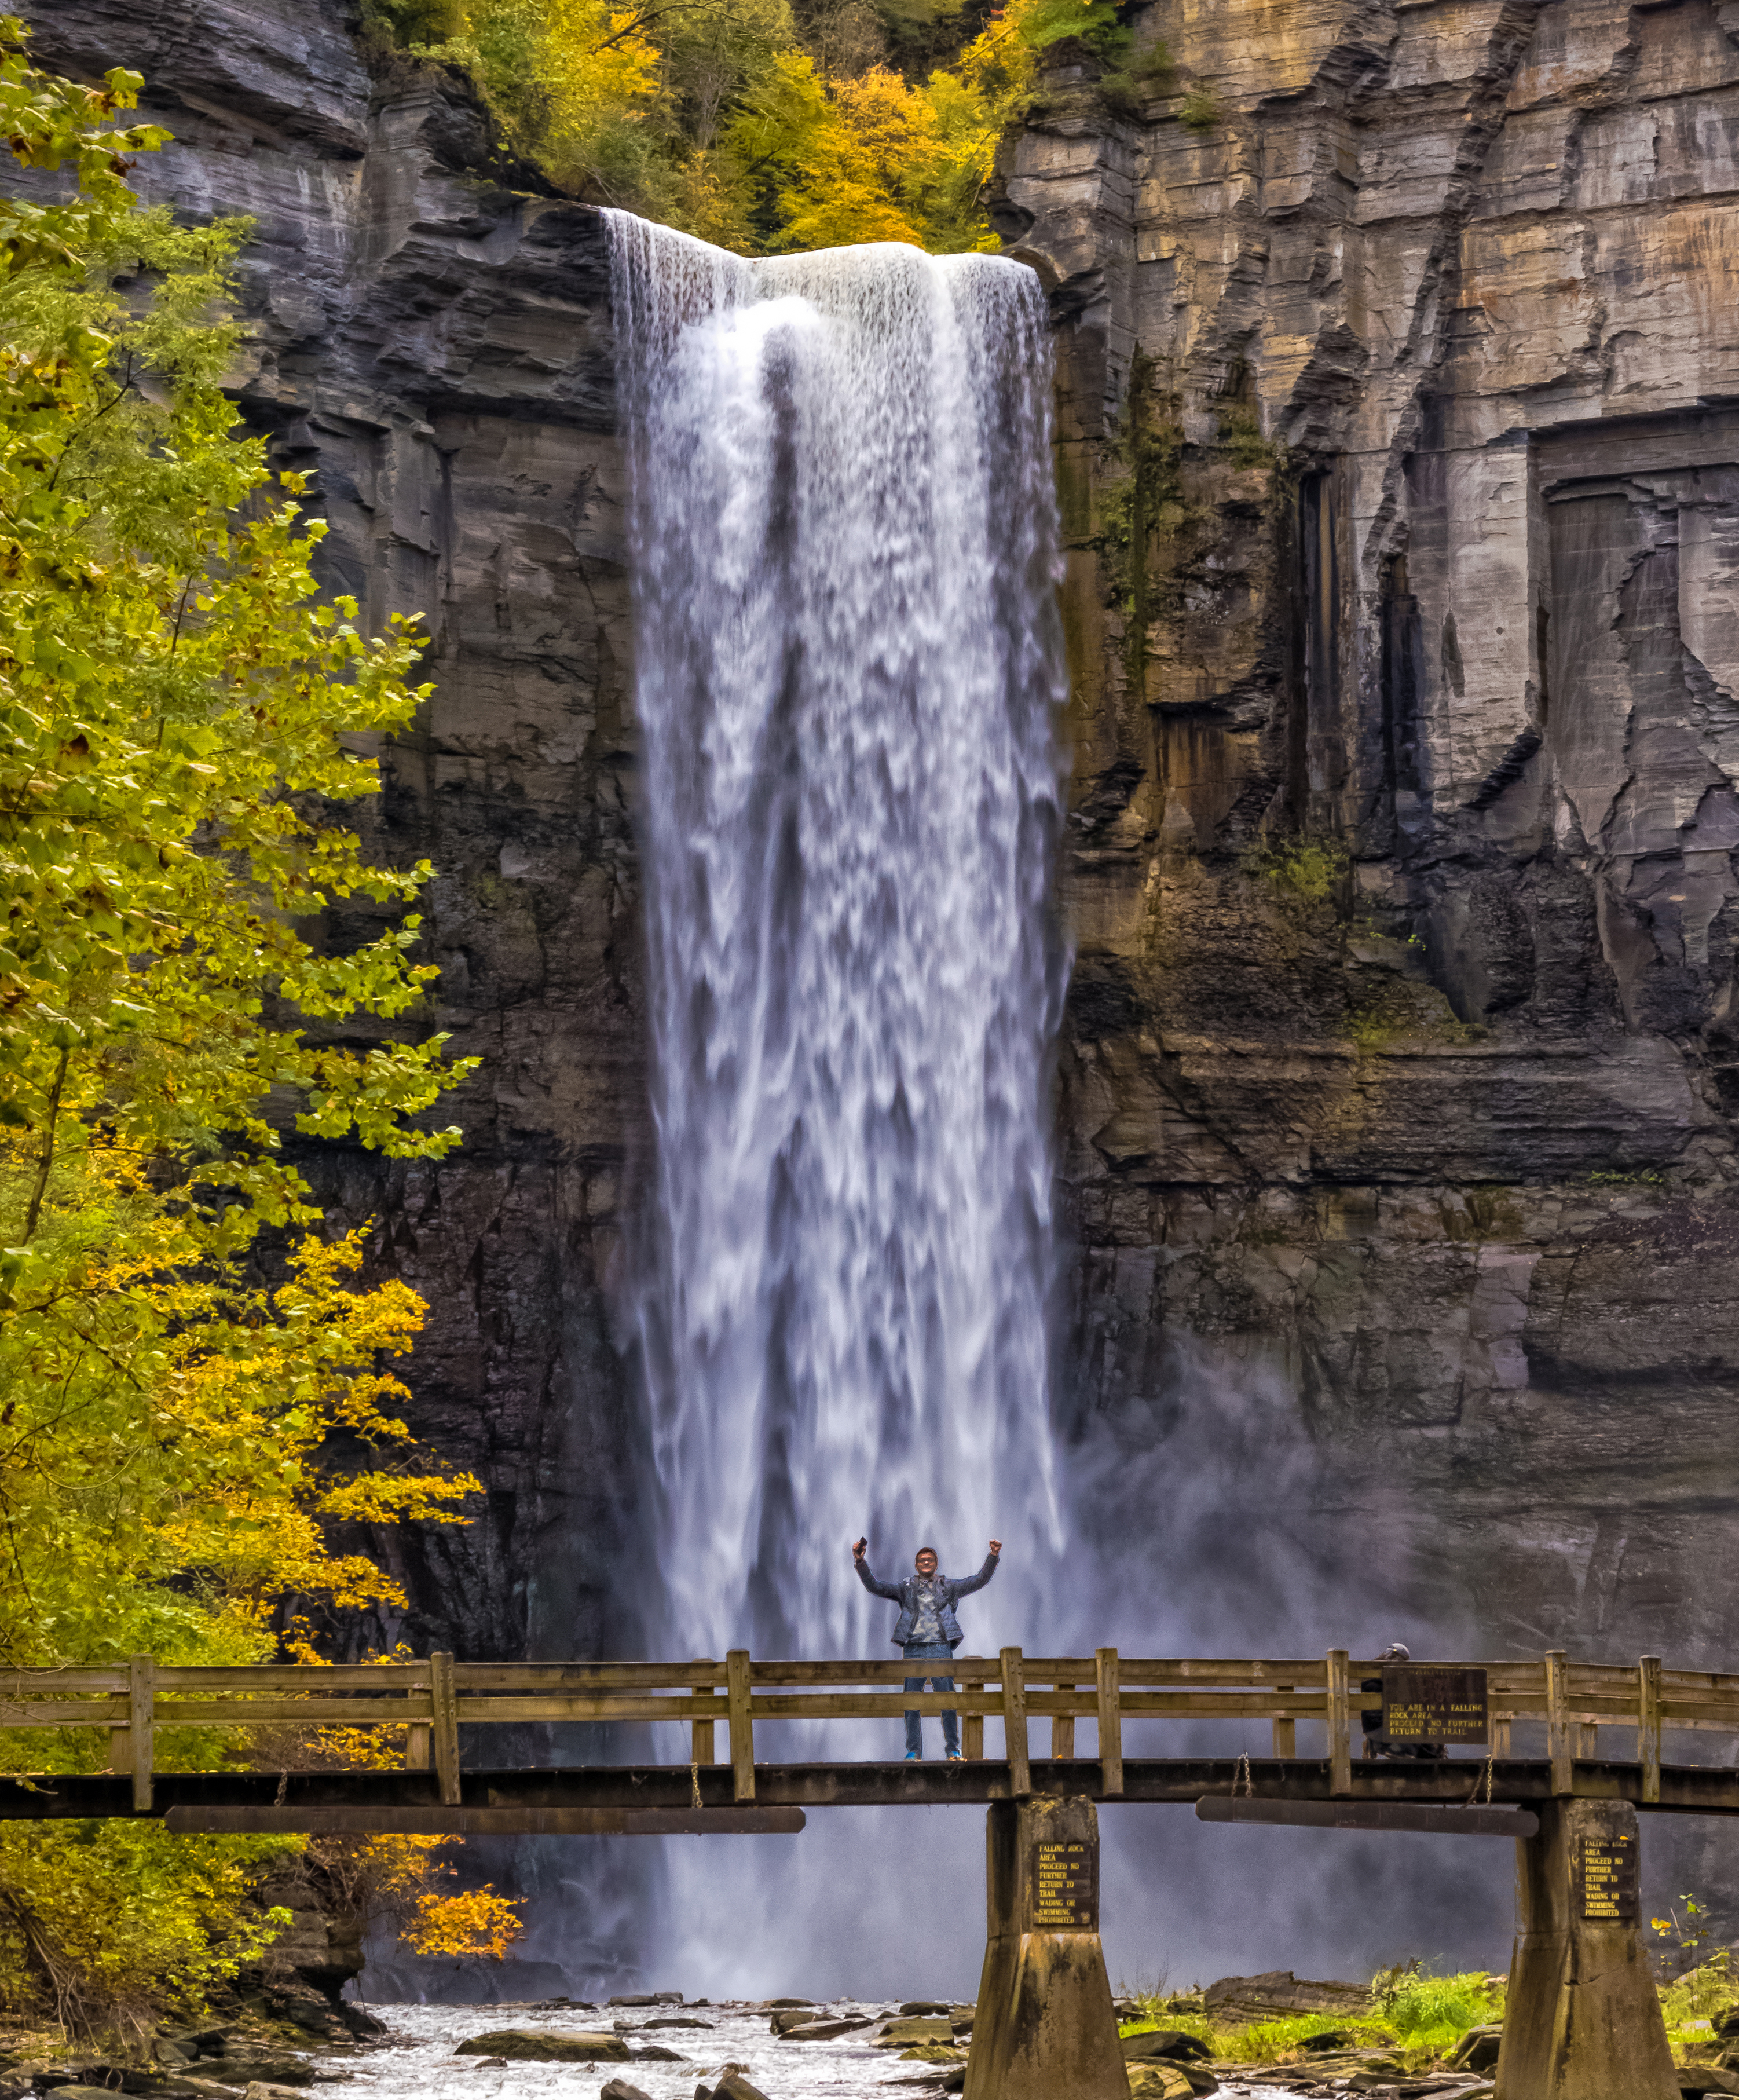 person on bridge in front of Taughannock Falls